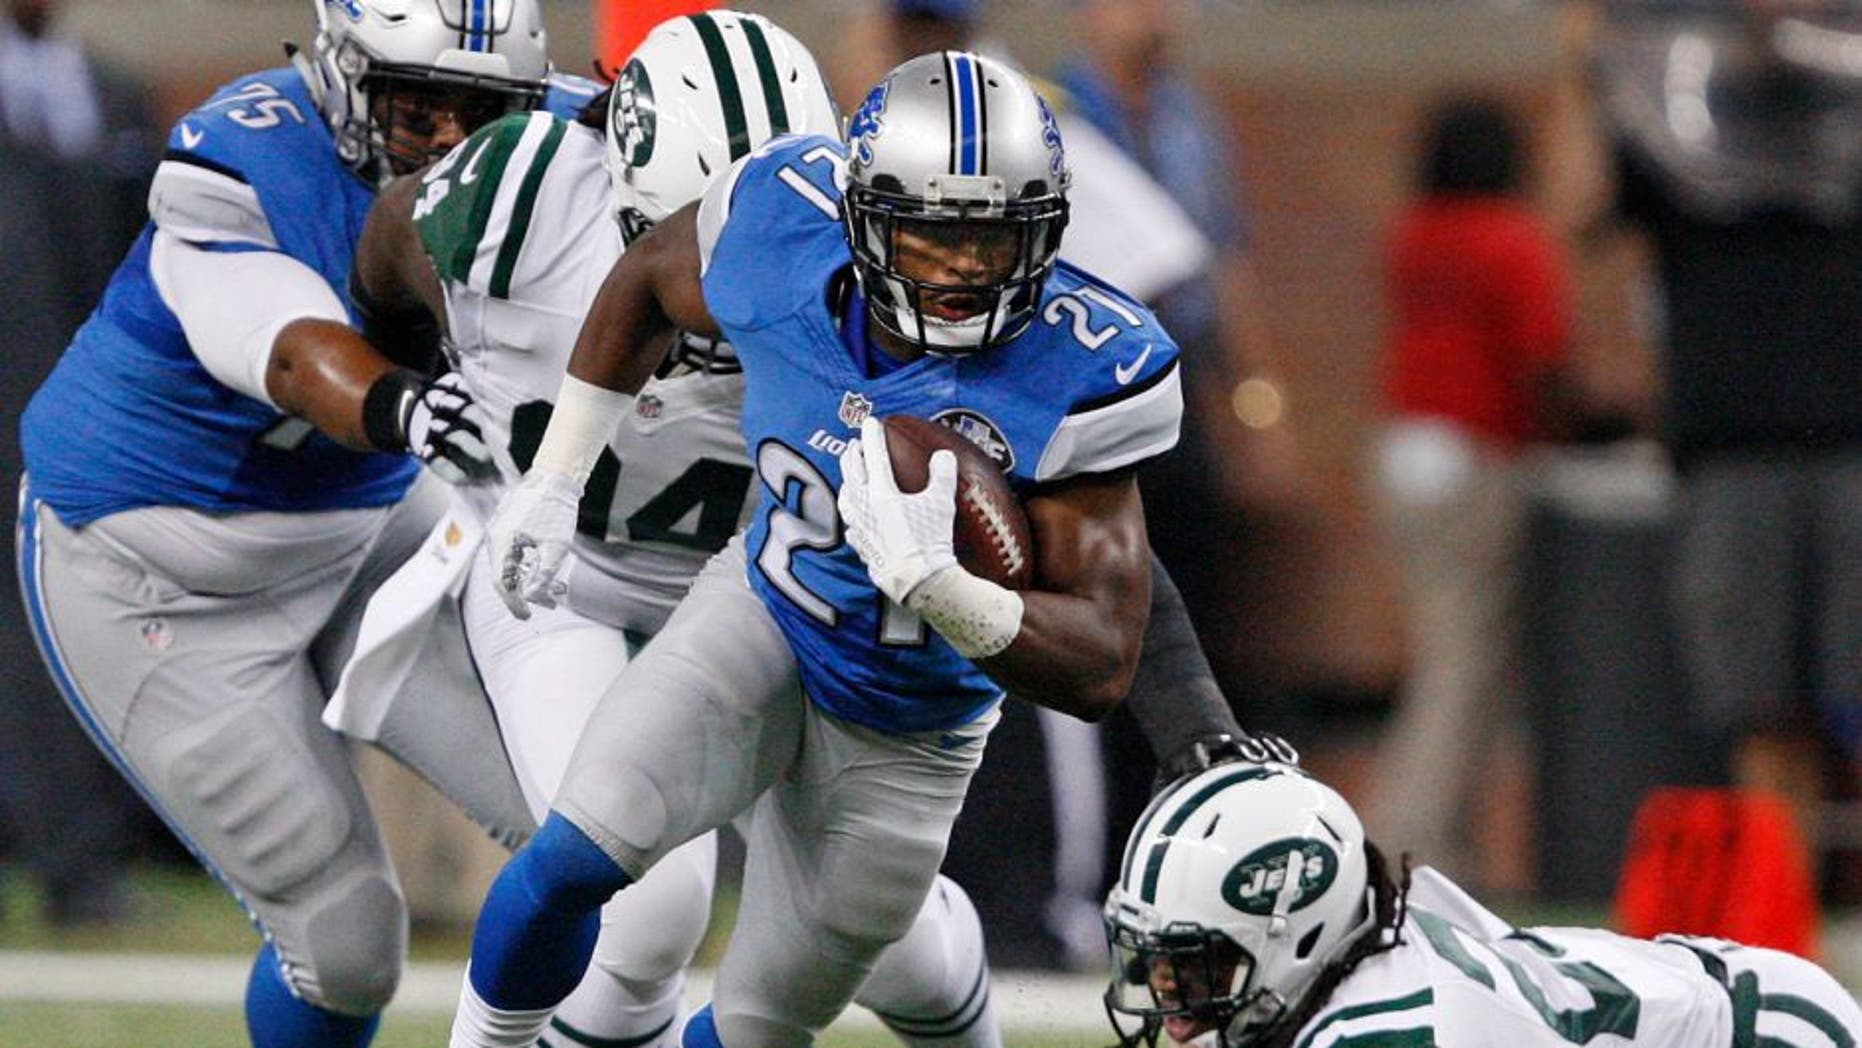 Aug 13, 2015; Detroit, MI, USA; Detroit Lions running back Ameer Abdullah (21) evades a tackle from New York Jets free safety Calvin Pryor (25) during the first quarter of a preseason NFL football game at Ford Field. Mandatory Credit: Raj Mehta-USA TODAY Sports